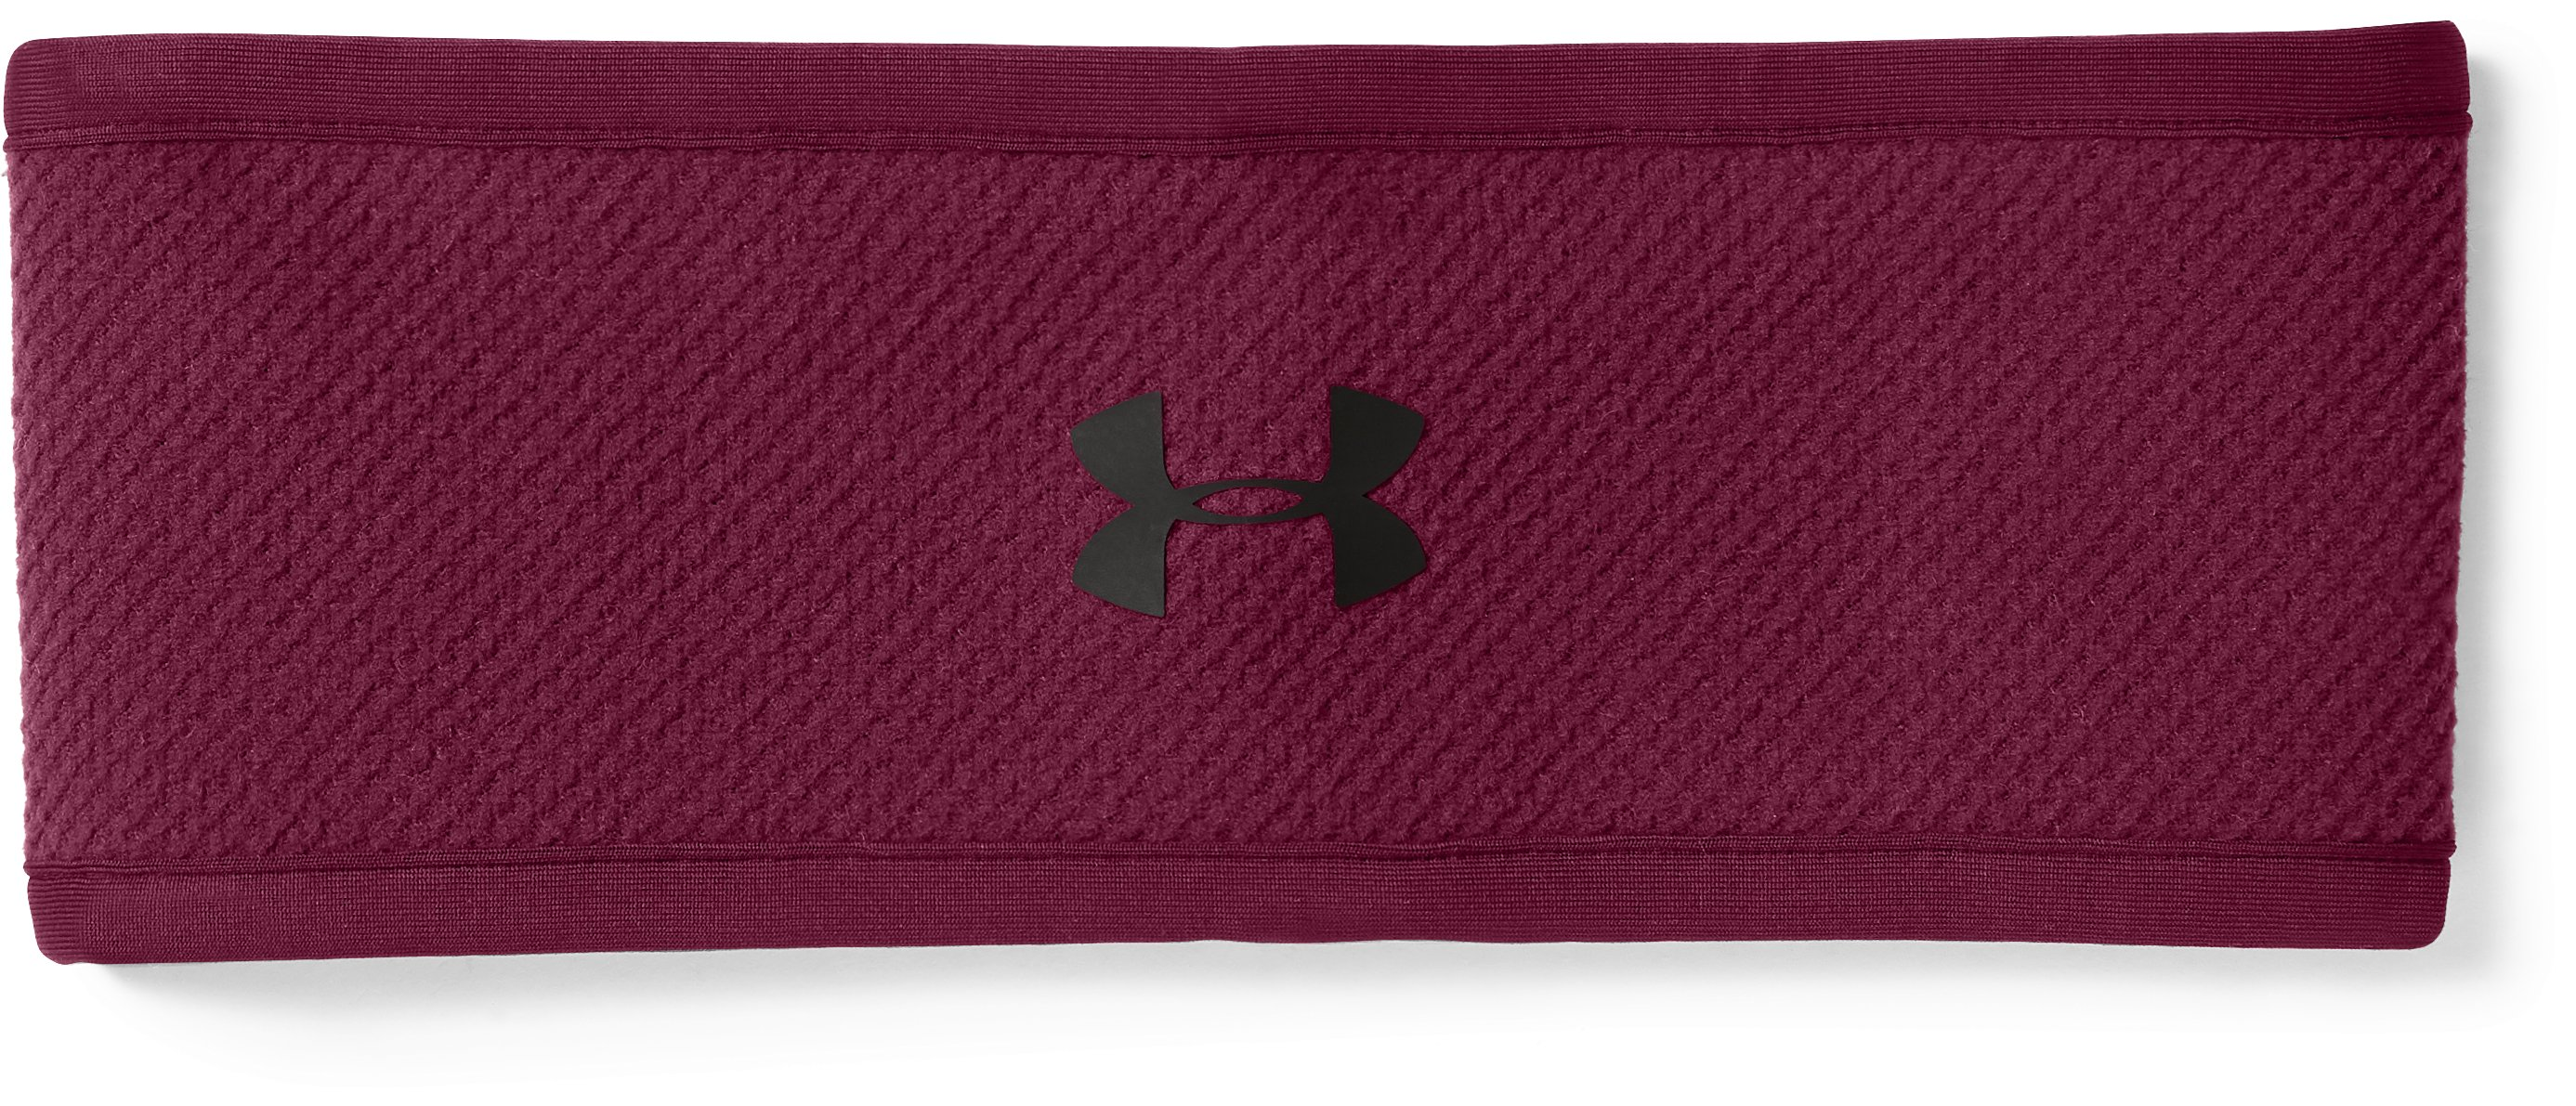 Women's ColdGear® Infrared Fleece Headband, BLACK CURRANT